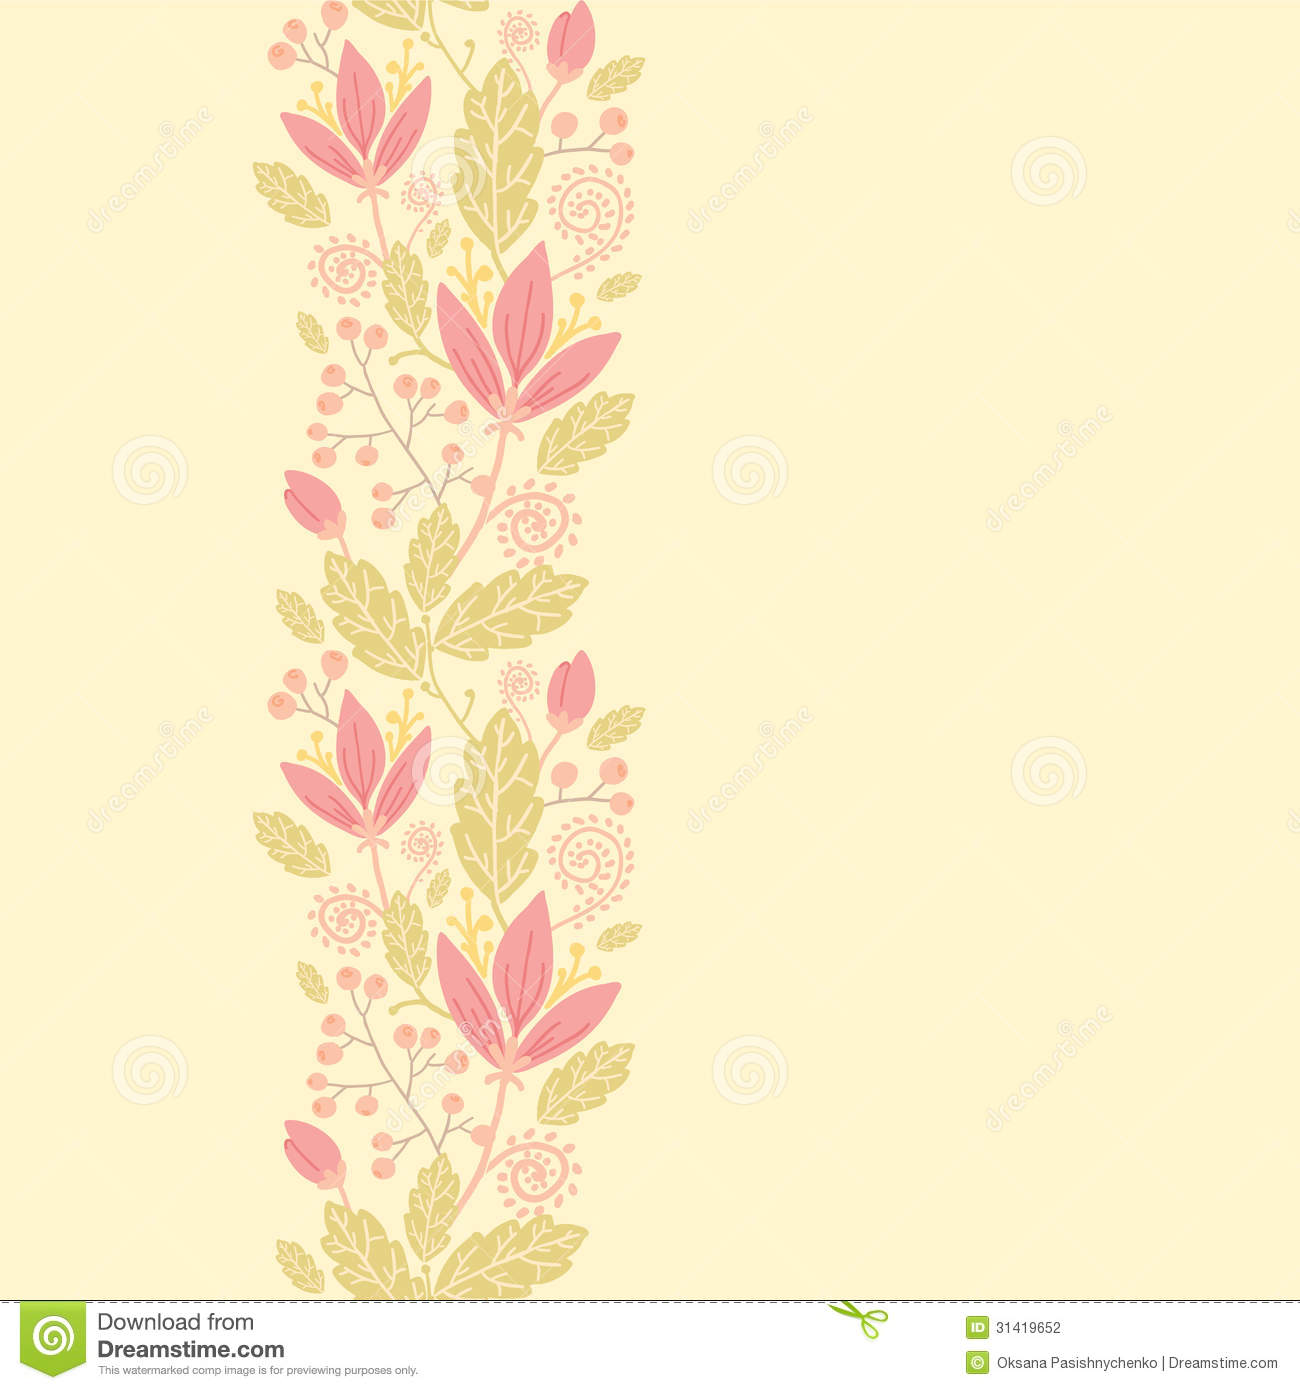 Fall Leaves Falling Wallpaper Flowers And Berries Vertical Seamless Pattern Stock